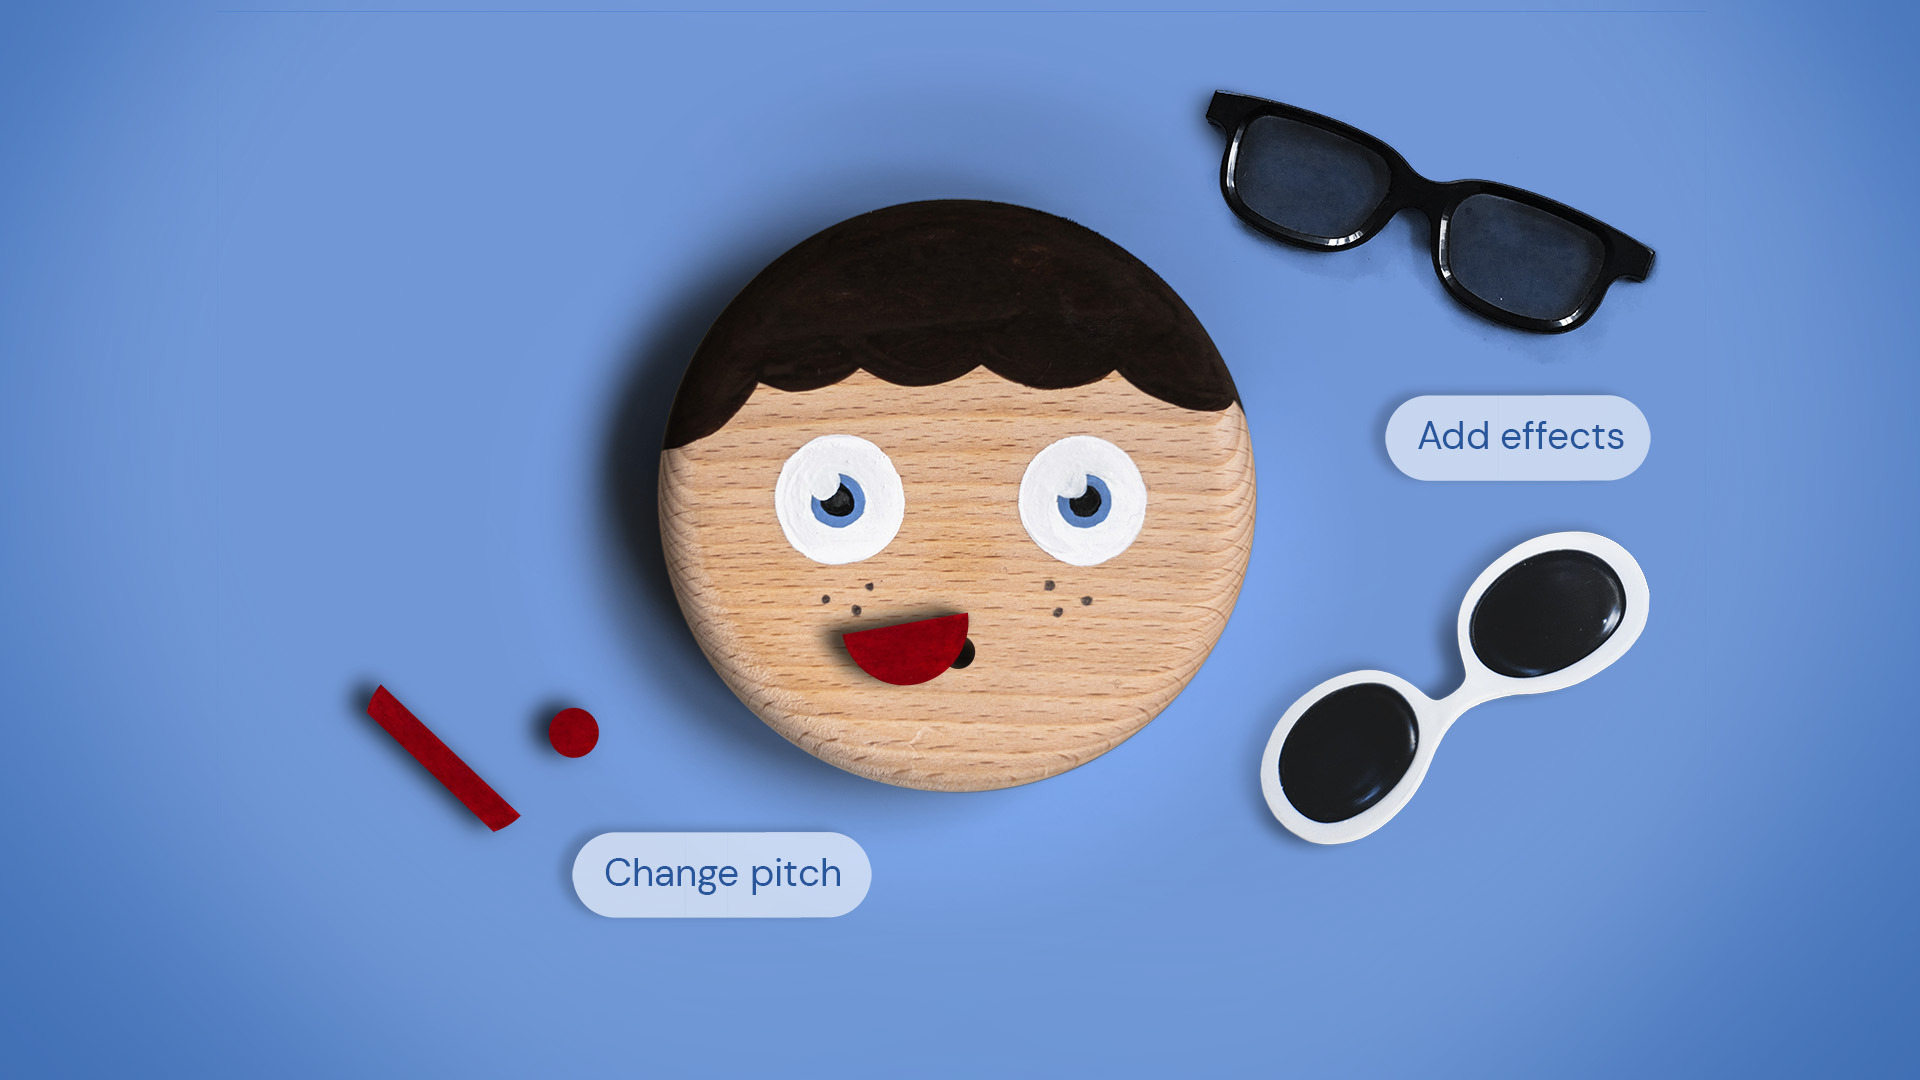 Accessories can be swapped out to manipulate the recordings, incorporating concepts from play and music therapy.